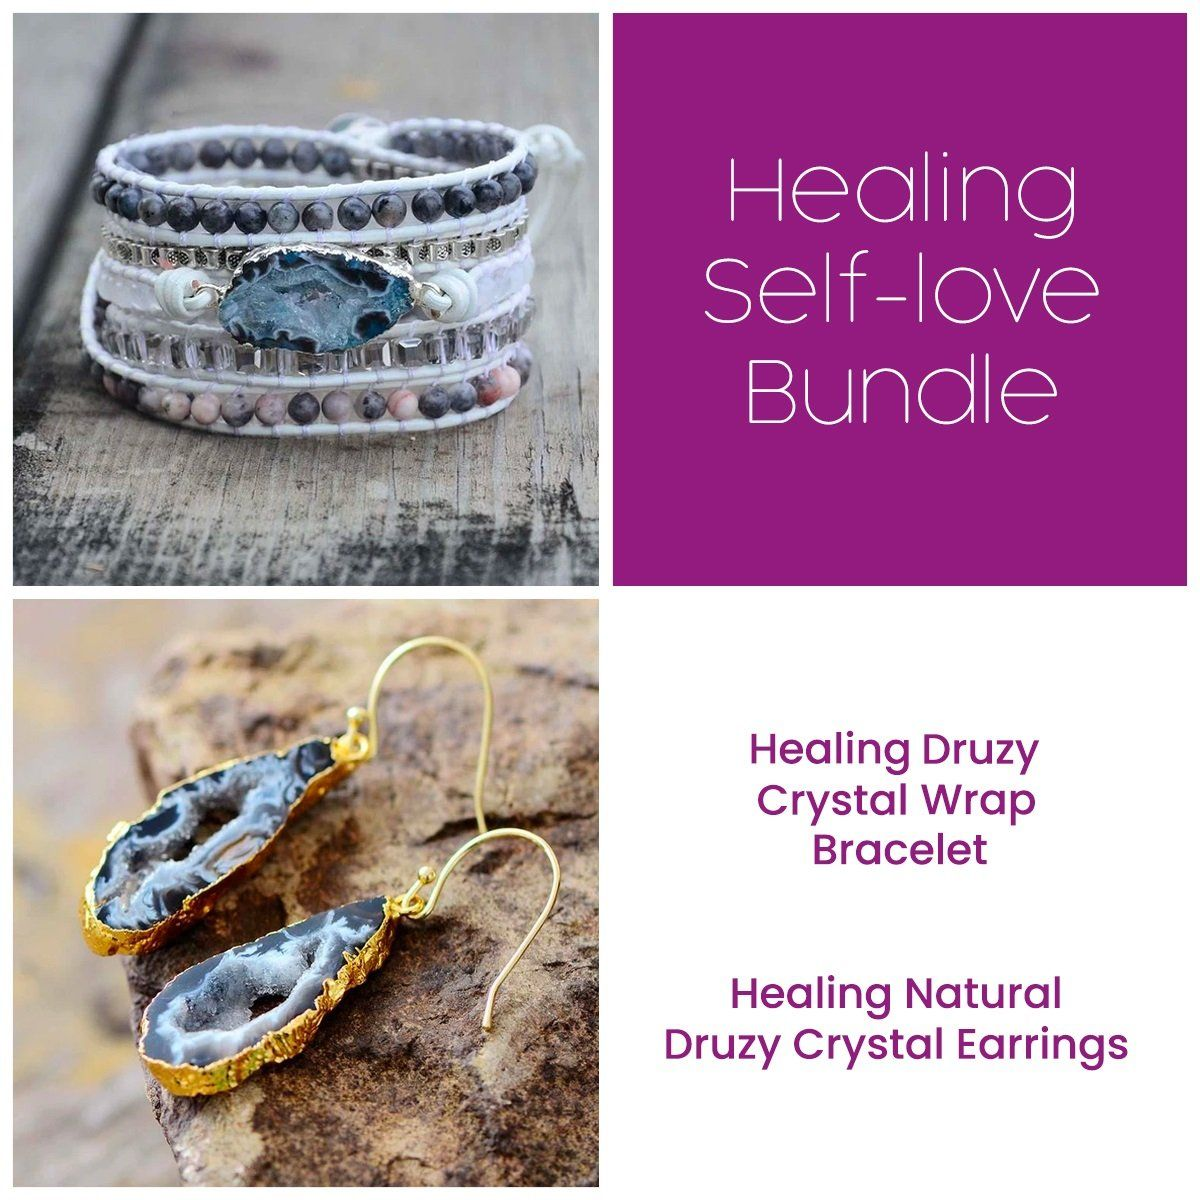 Healing Self-love Bundle